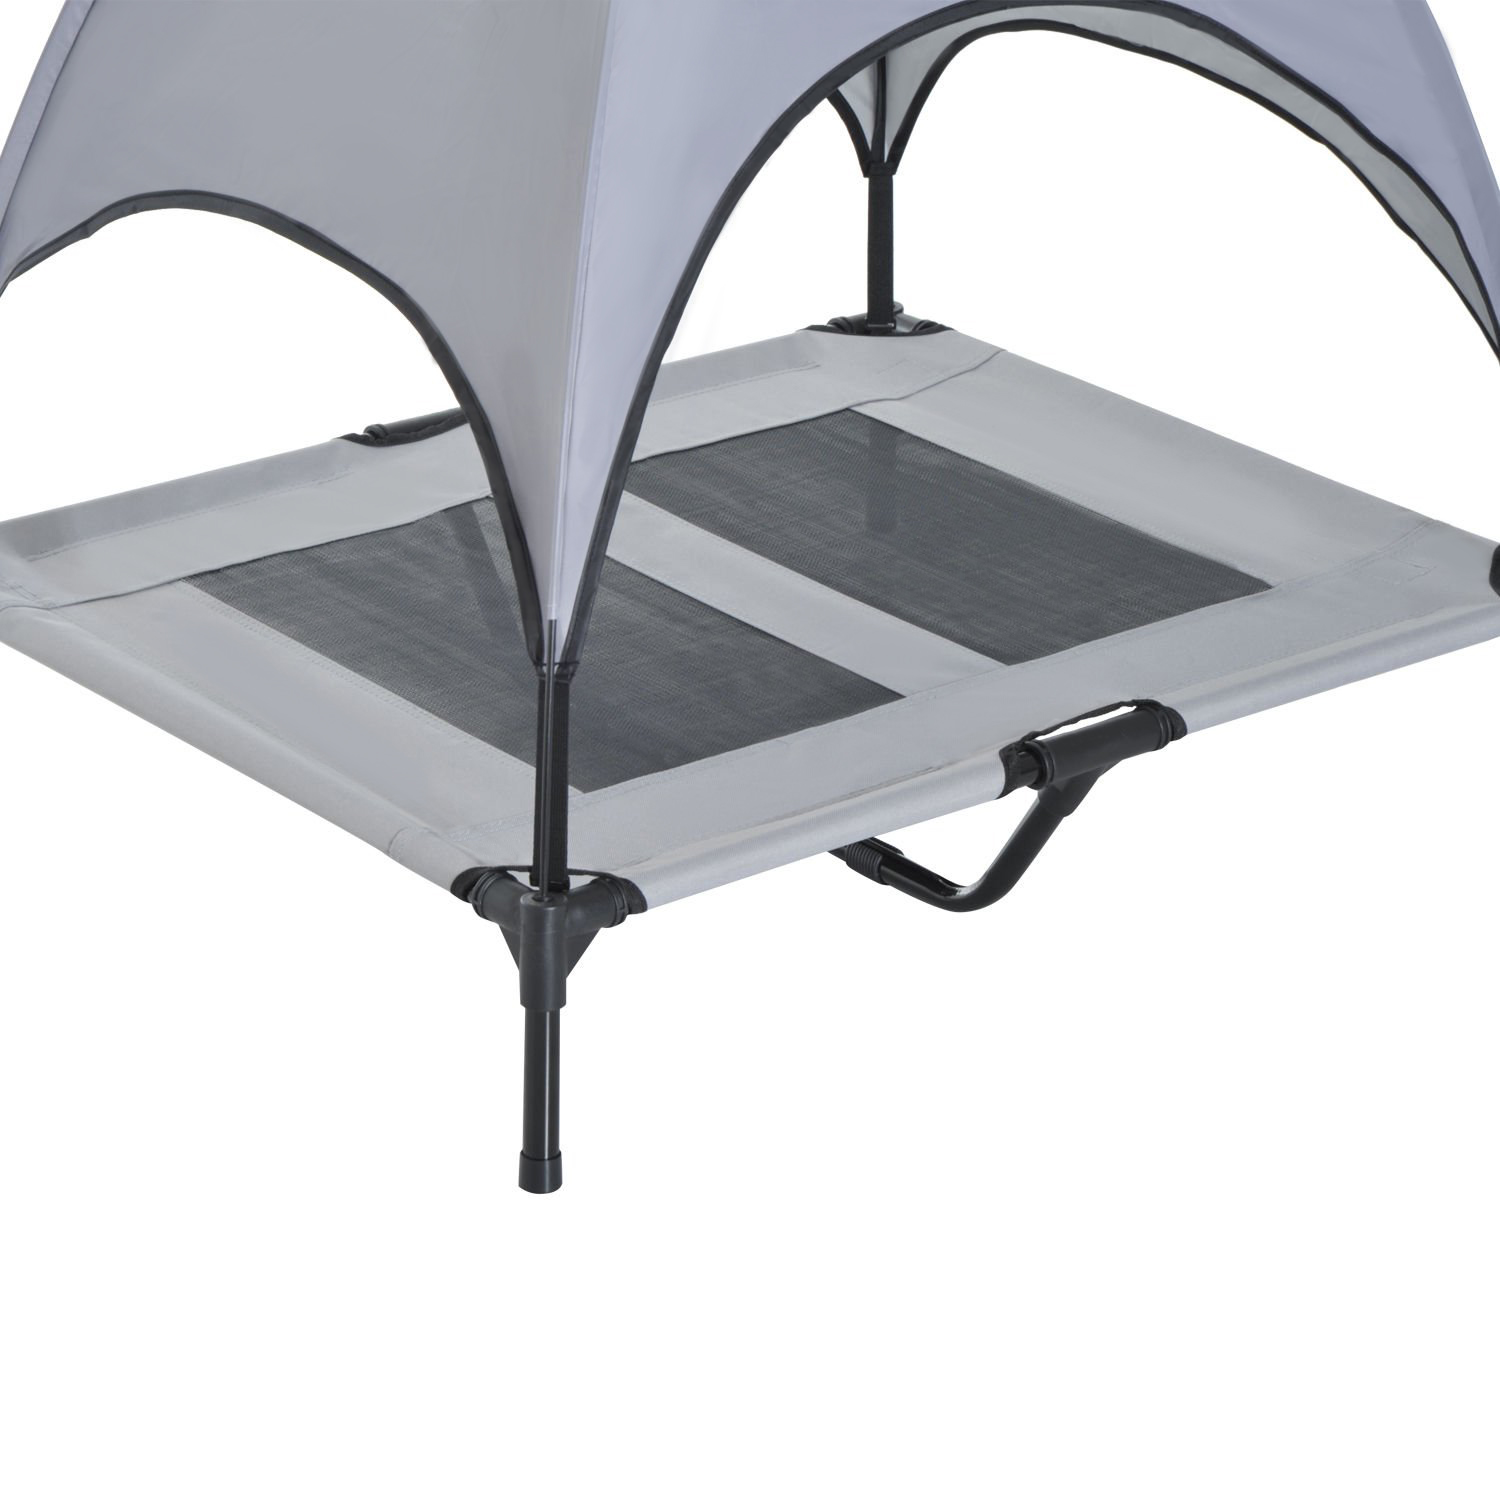 PawHut-Elevated-Pet-Bed-Dog-Foldable-Cot-Tent-Canopy-Instant-Shelter-Outdoor thumbnail 17